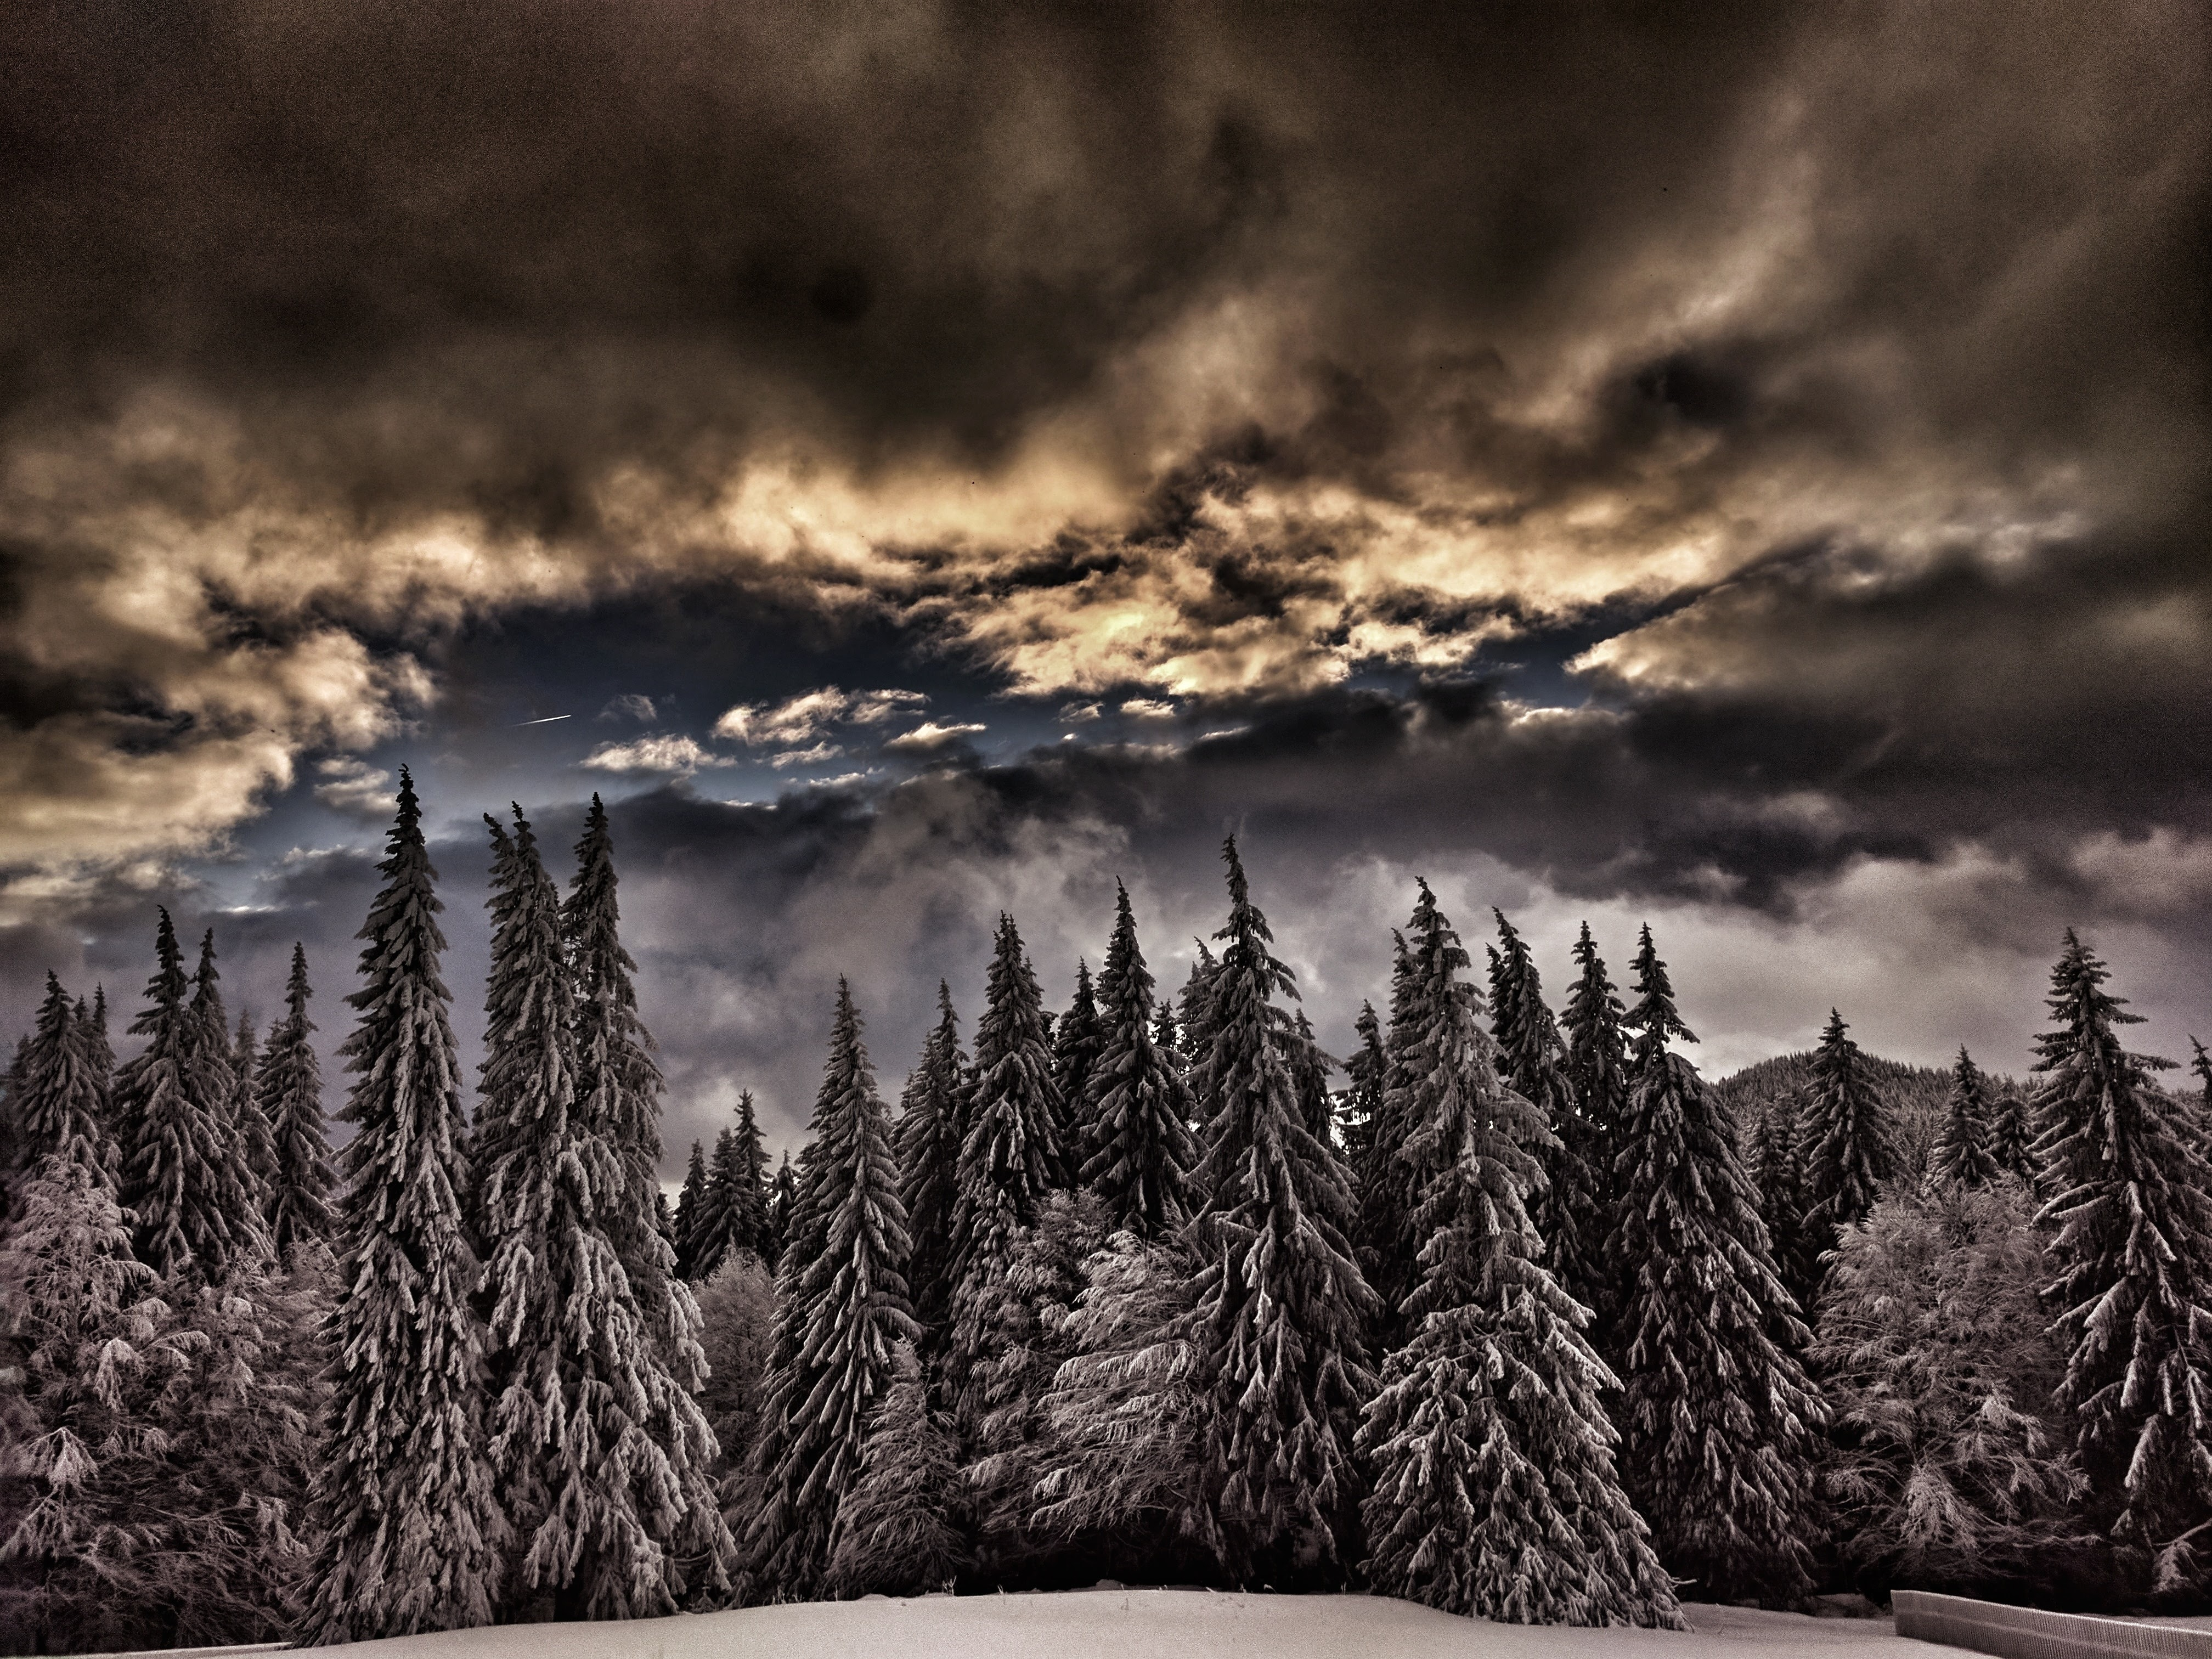 A stretch of snow-covered evergreen trees on a cloudy day in Predeal